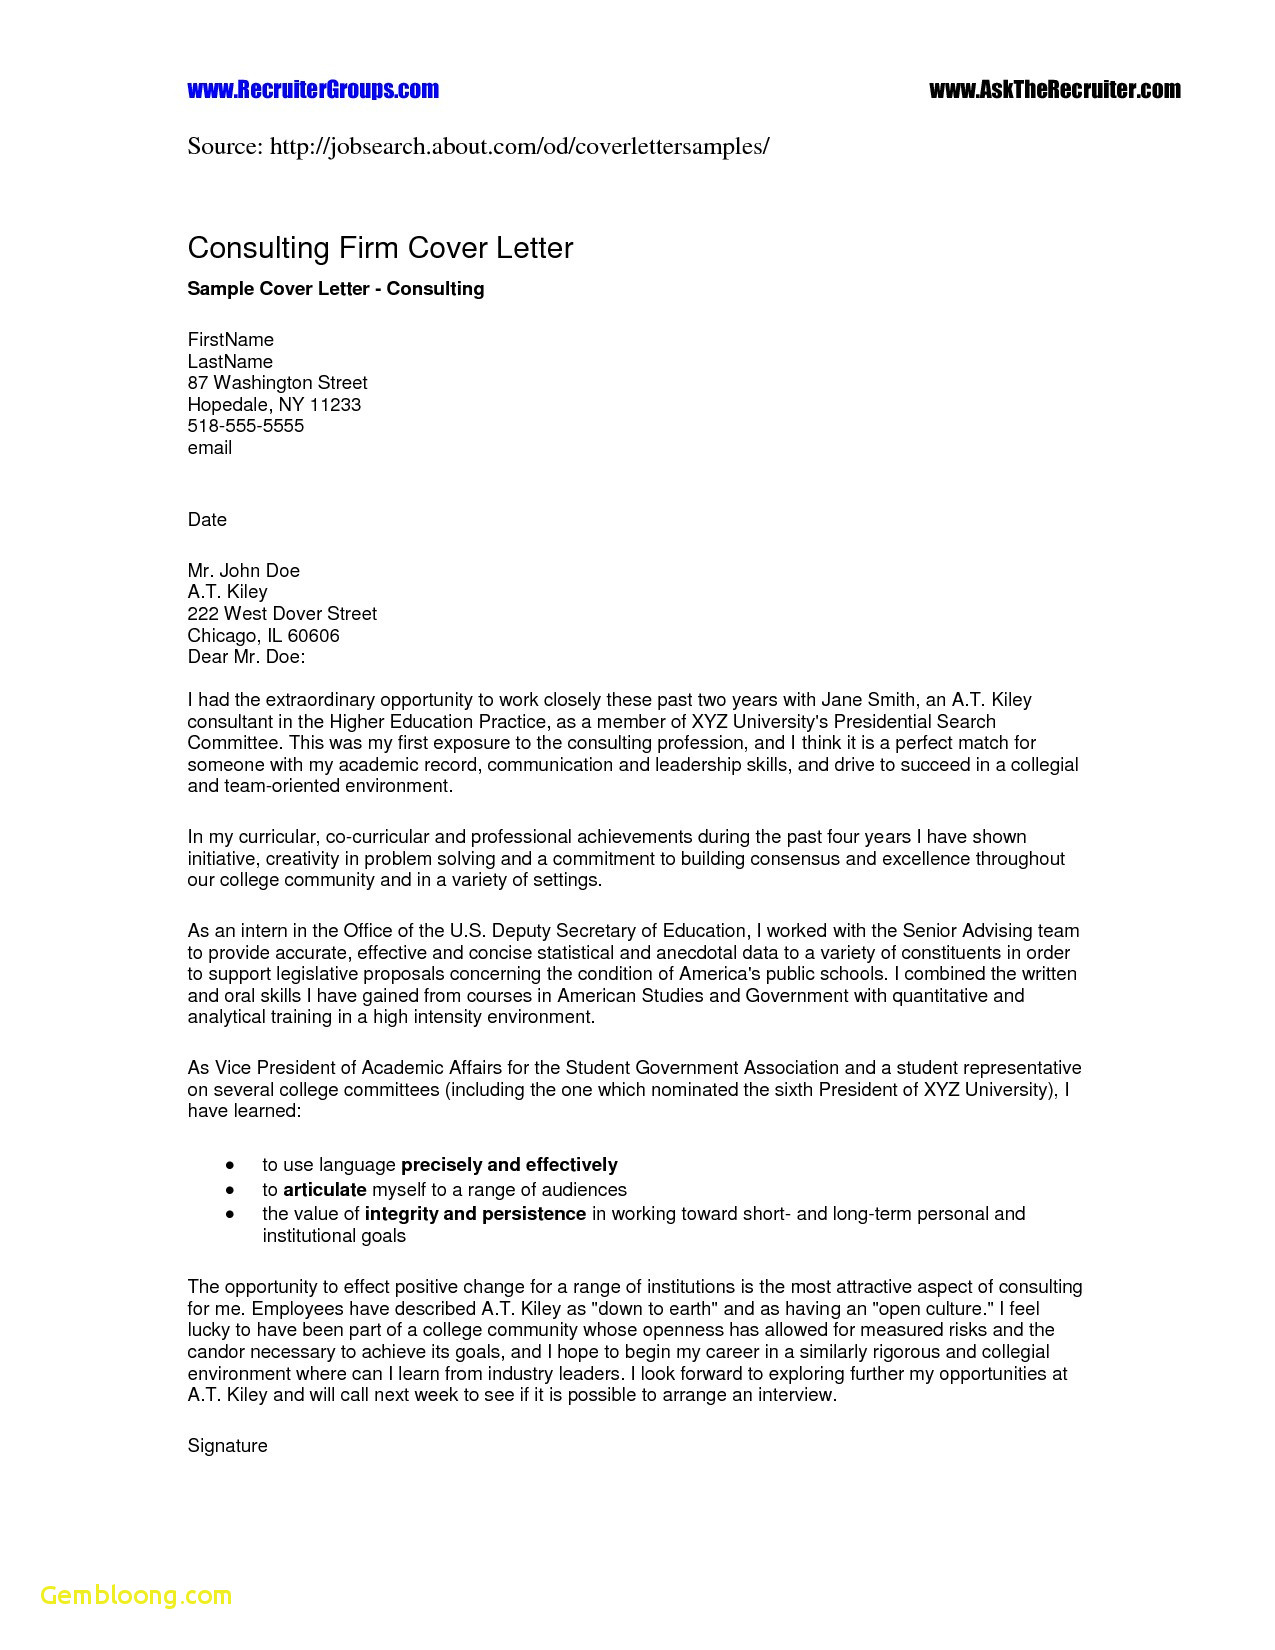 Cover Letter Template for First Job - Students Resume Templates Free Download First Job Resume Templates